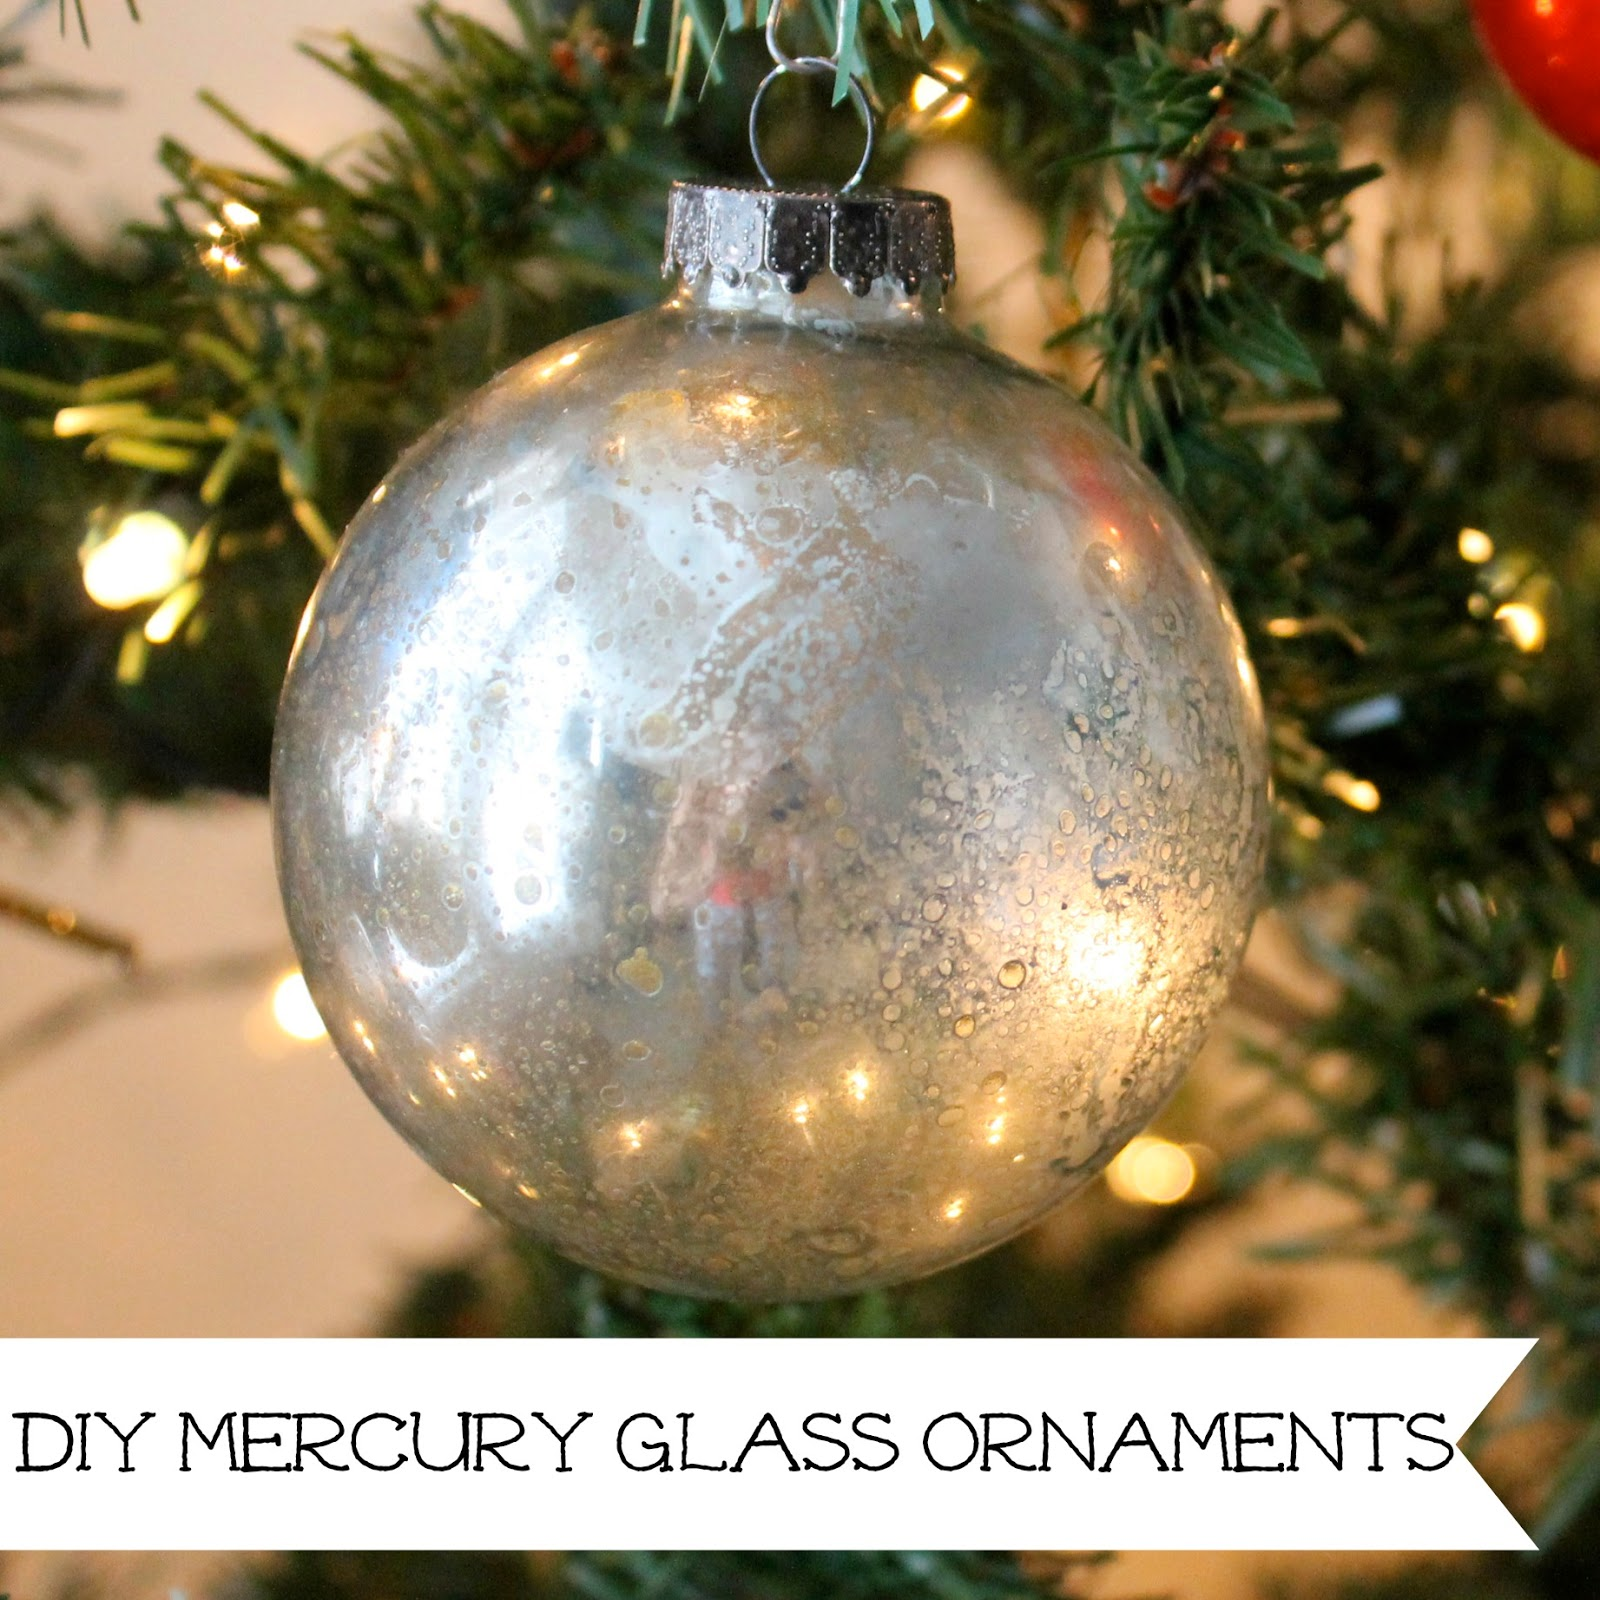 http://wonderfullymadebyleslie.blogspot.com/2013/12/diy-mercury-glass-ornaments.html